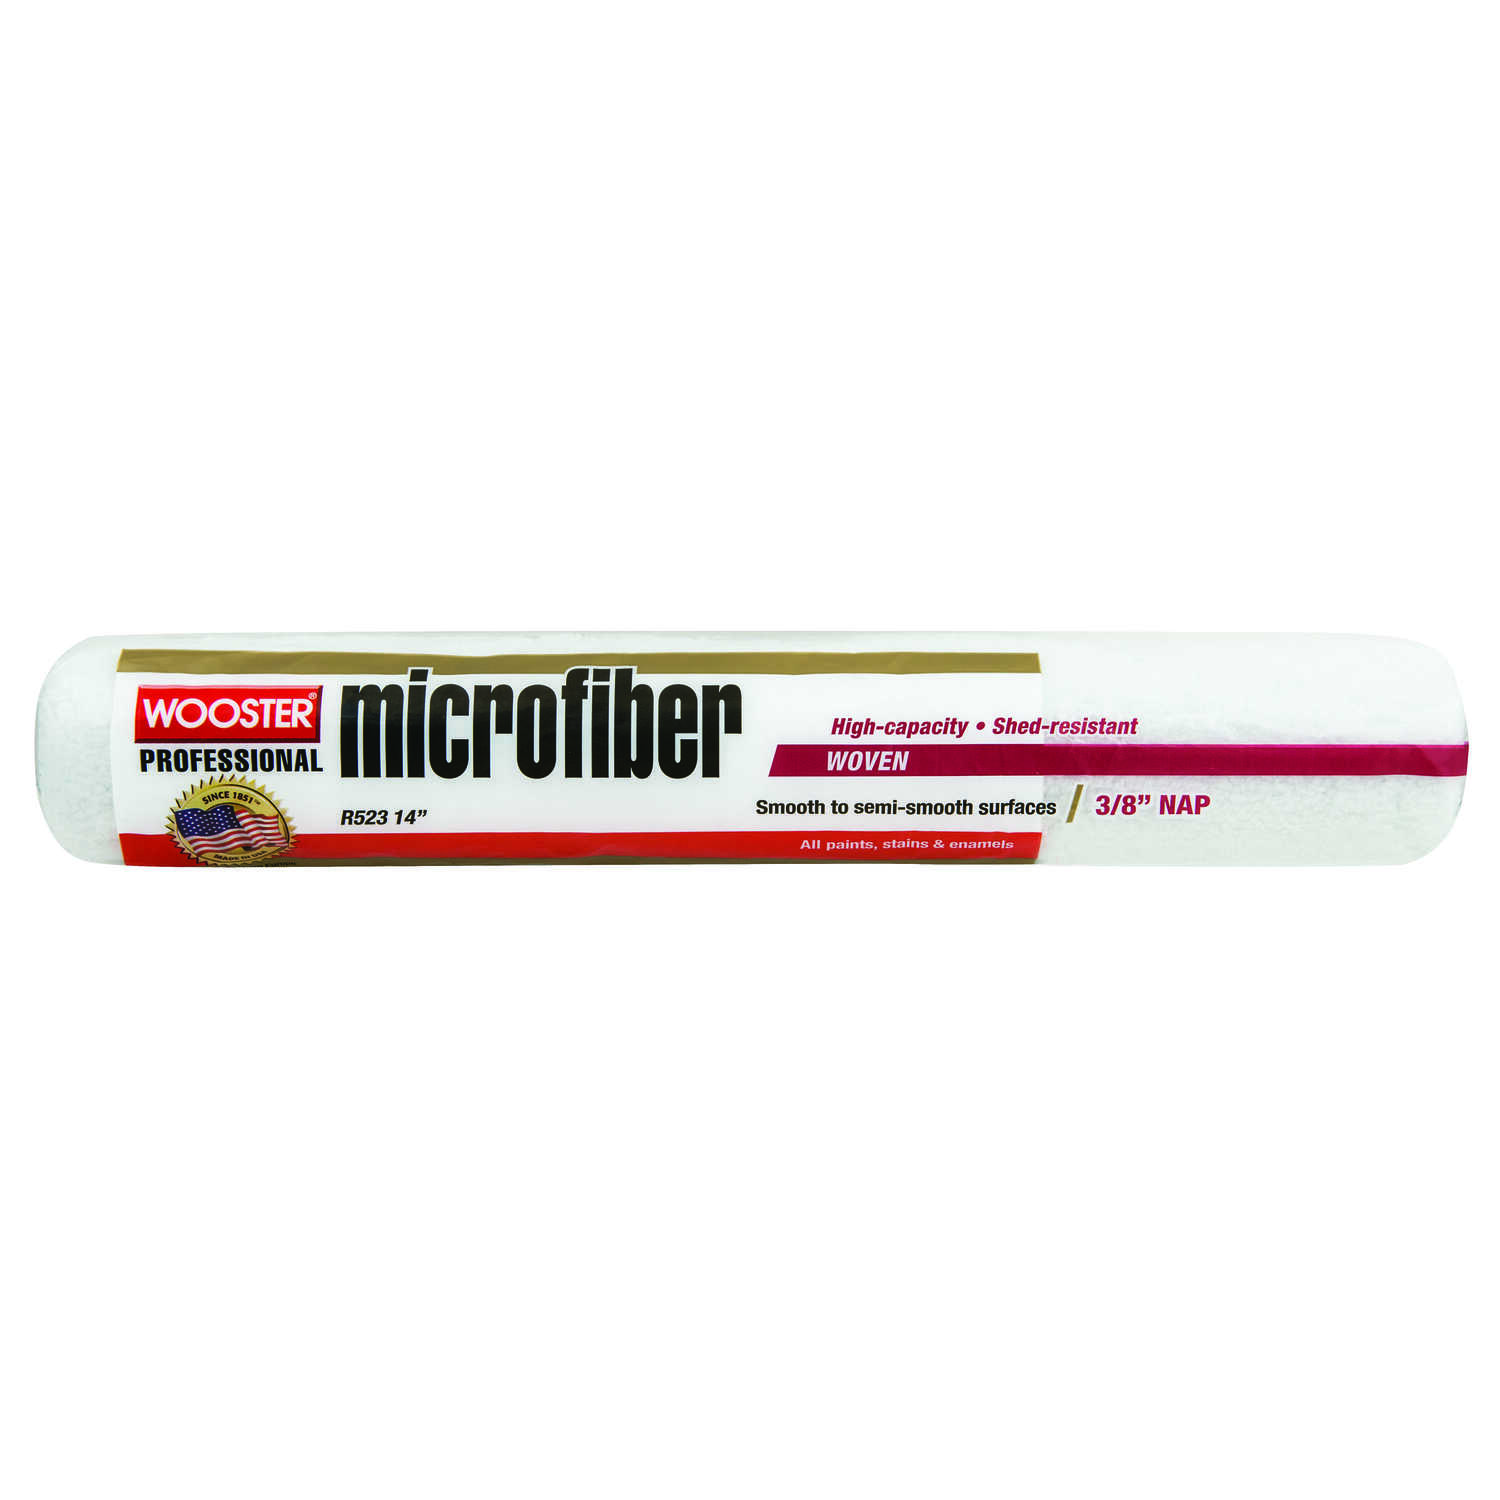 Wooster  Microfiber  Microfiber  3/8 in.  x 14 in. W Paint Roller Cover  1 pk